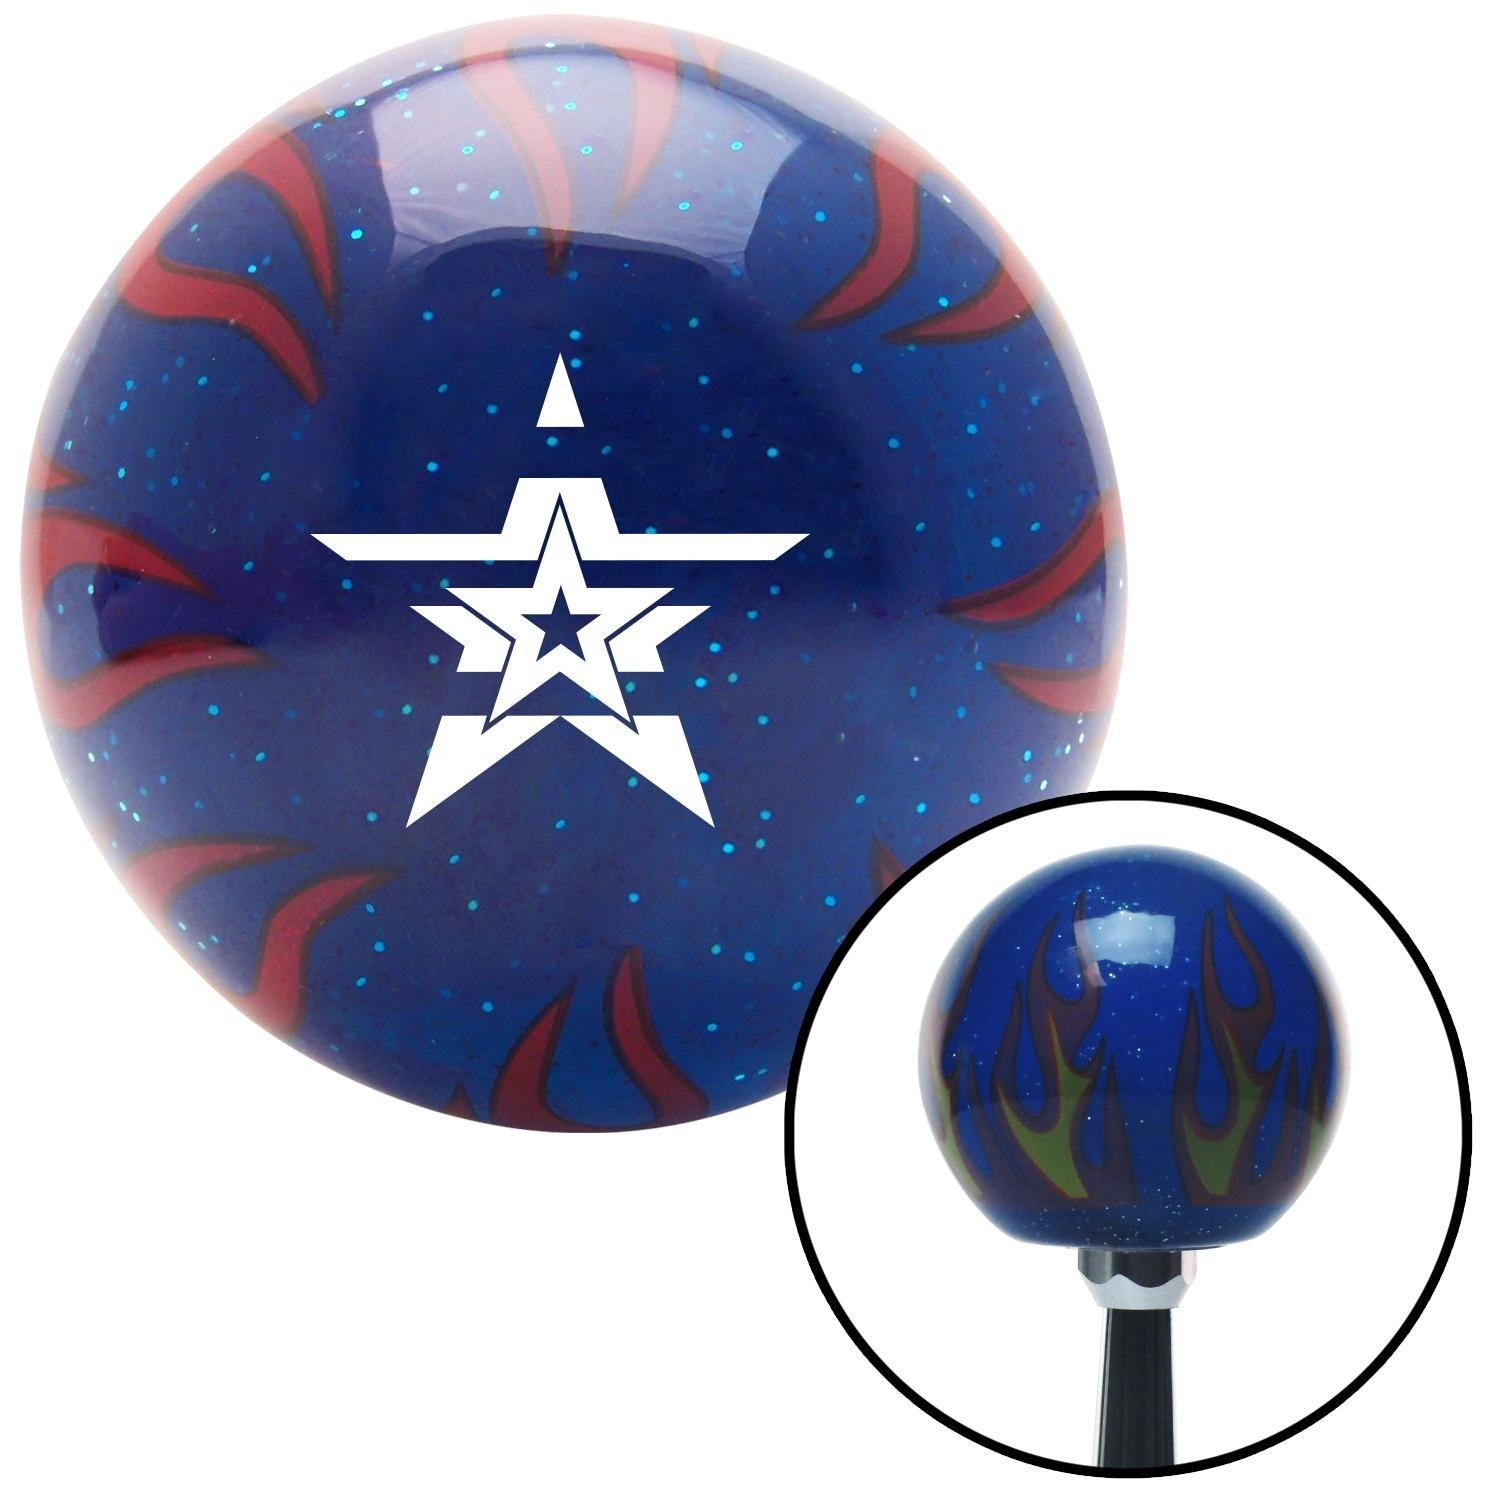 American Shifter 247682 Blue Flame Metal Flake Shift Knob with M16 x 1.5 Insert White Star in a Star in a Star